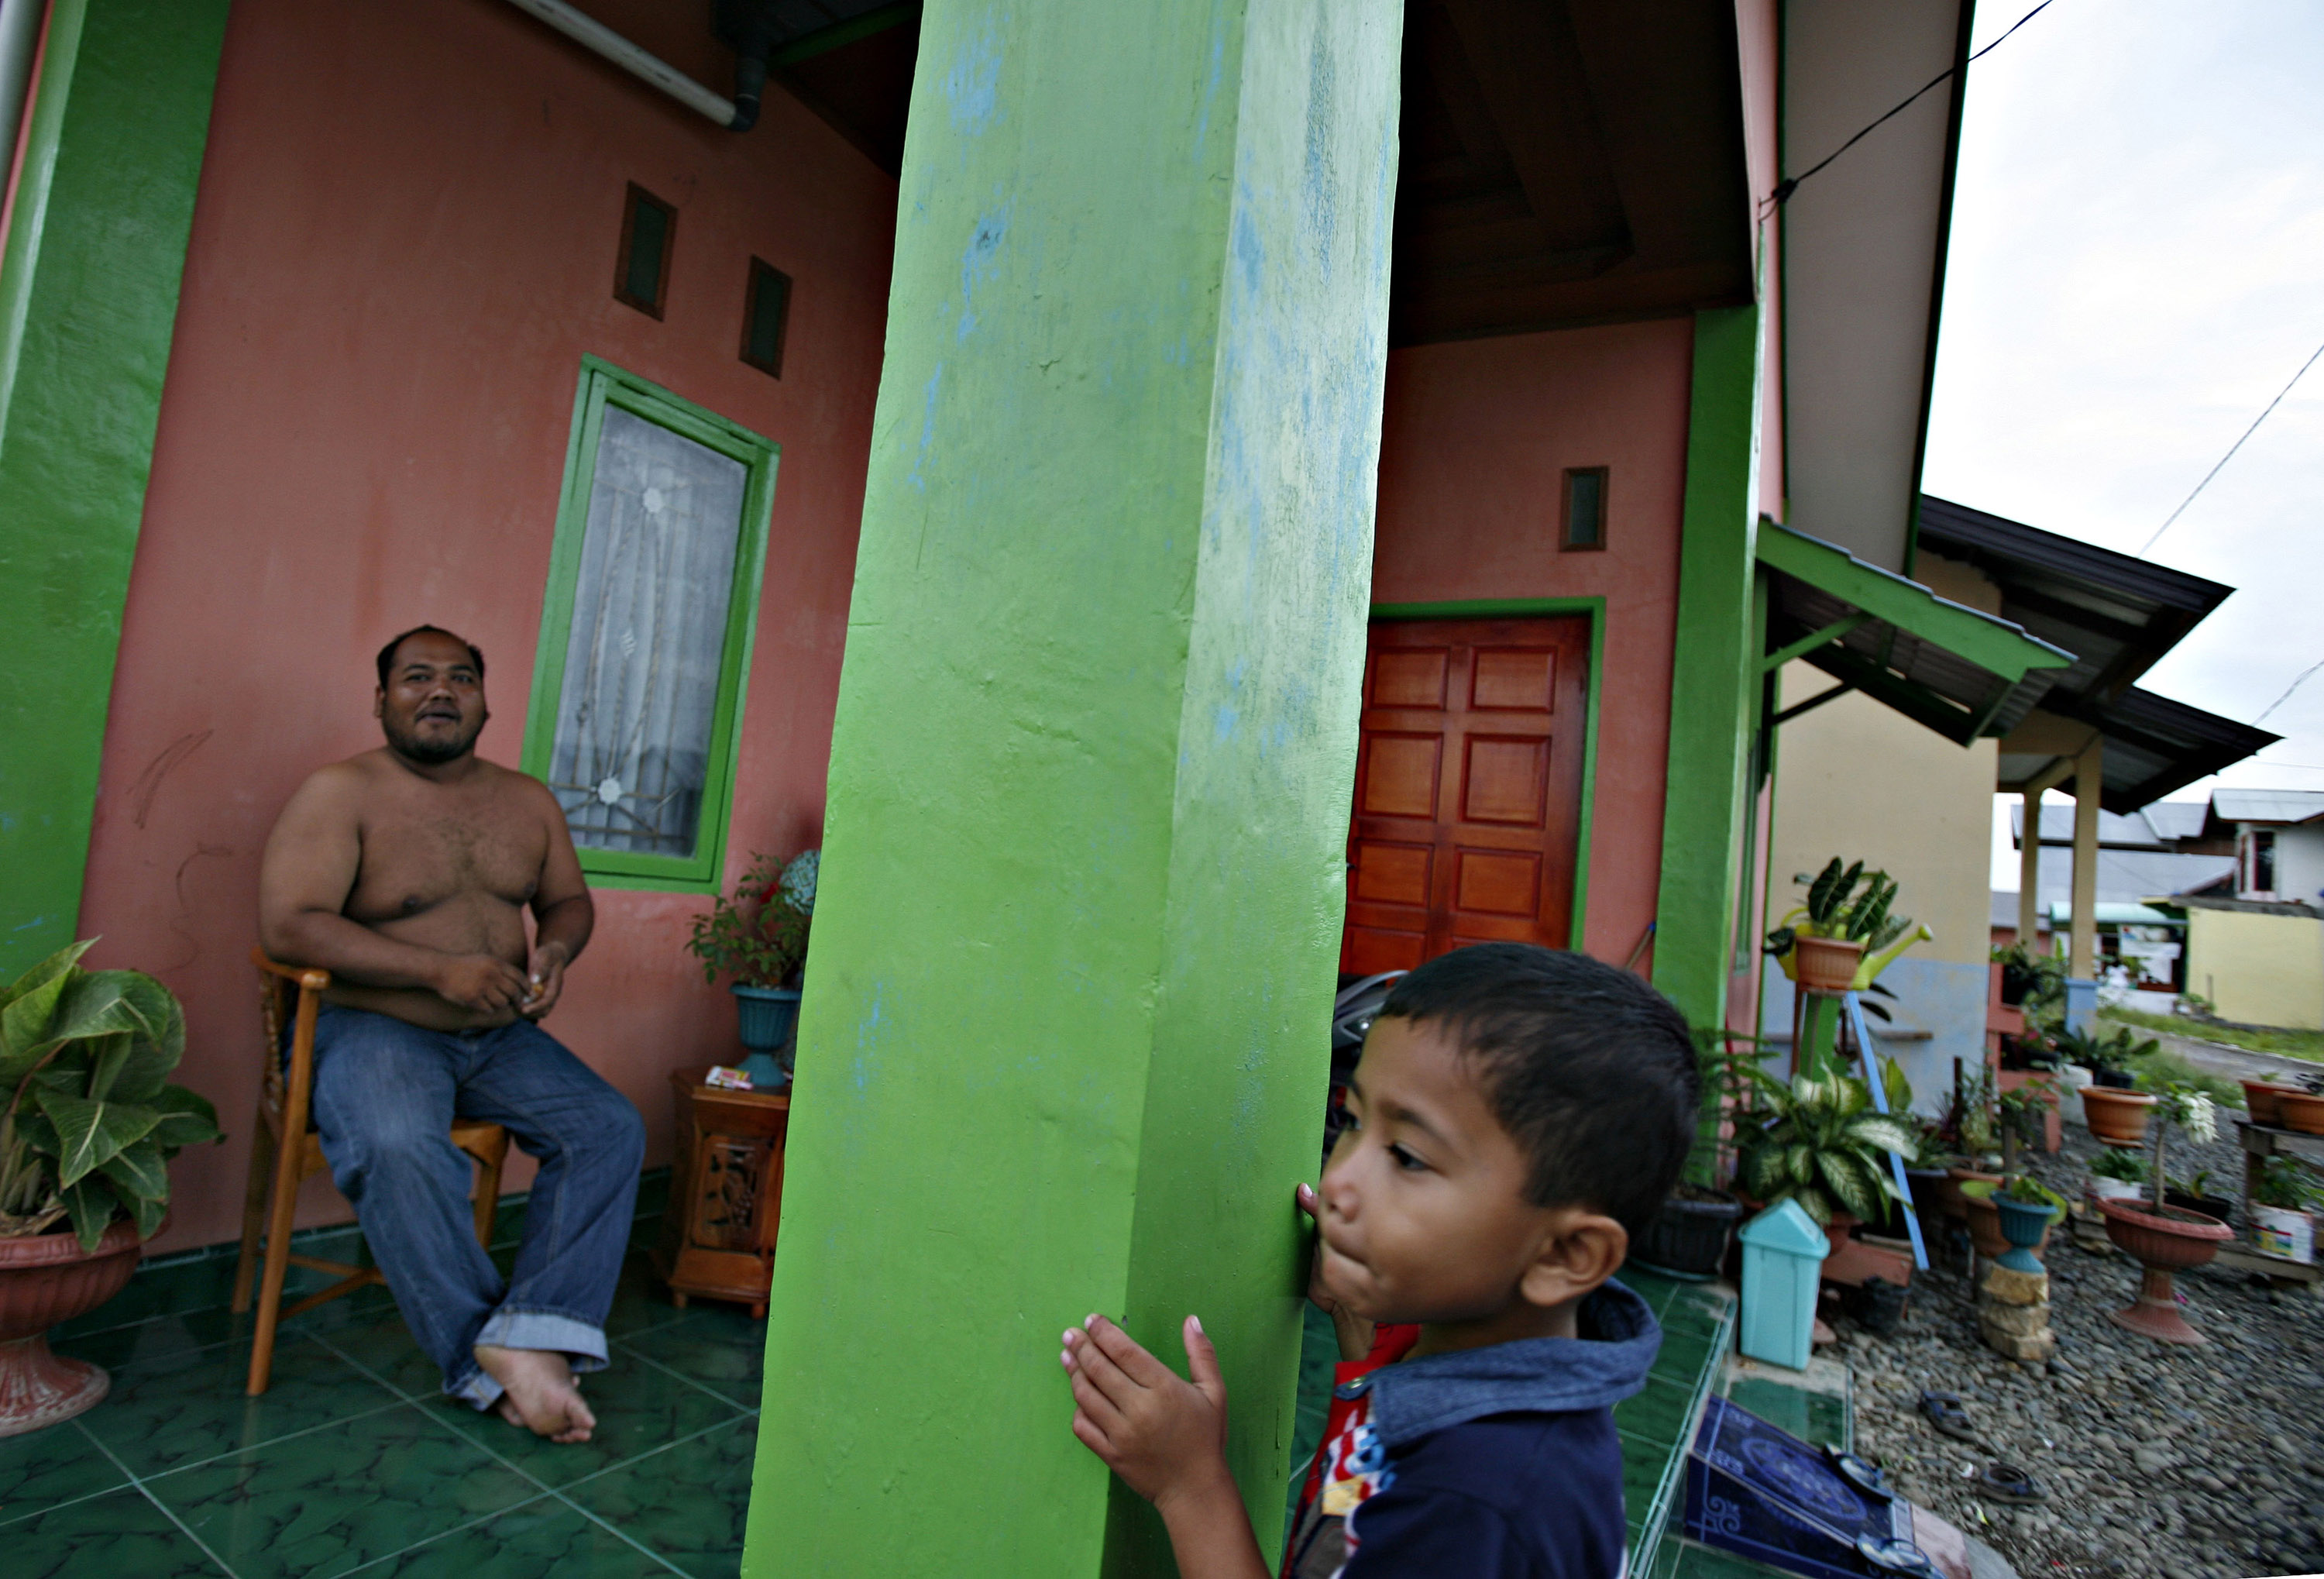 An Acehnese boy plays, as his father watches, in their new home built by an aid organization in Banda Aceh, Indonesia in this November 30 photo.